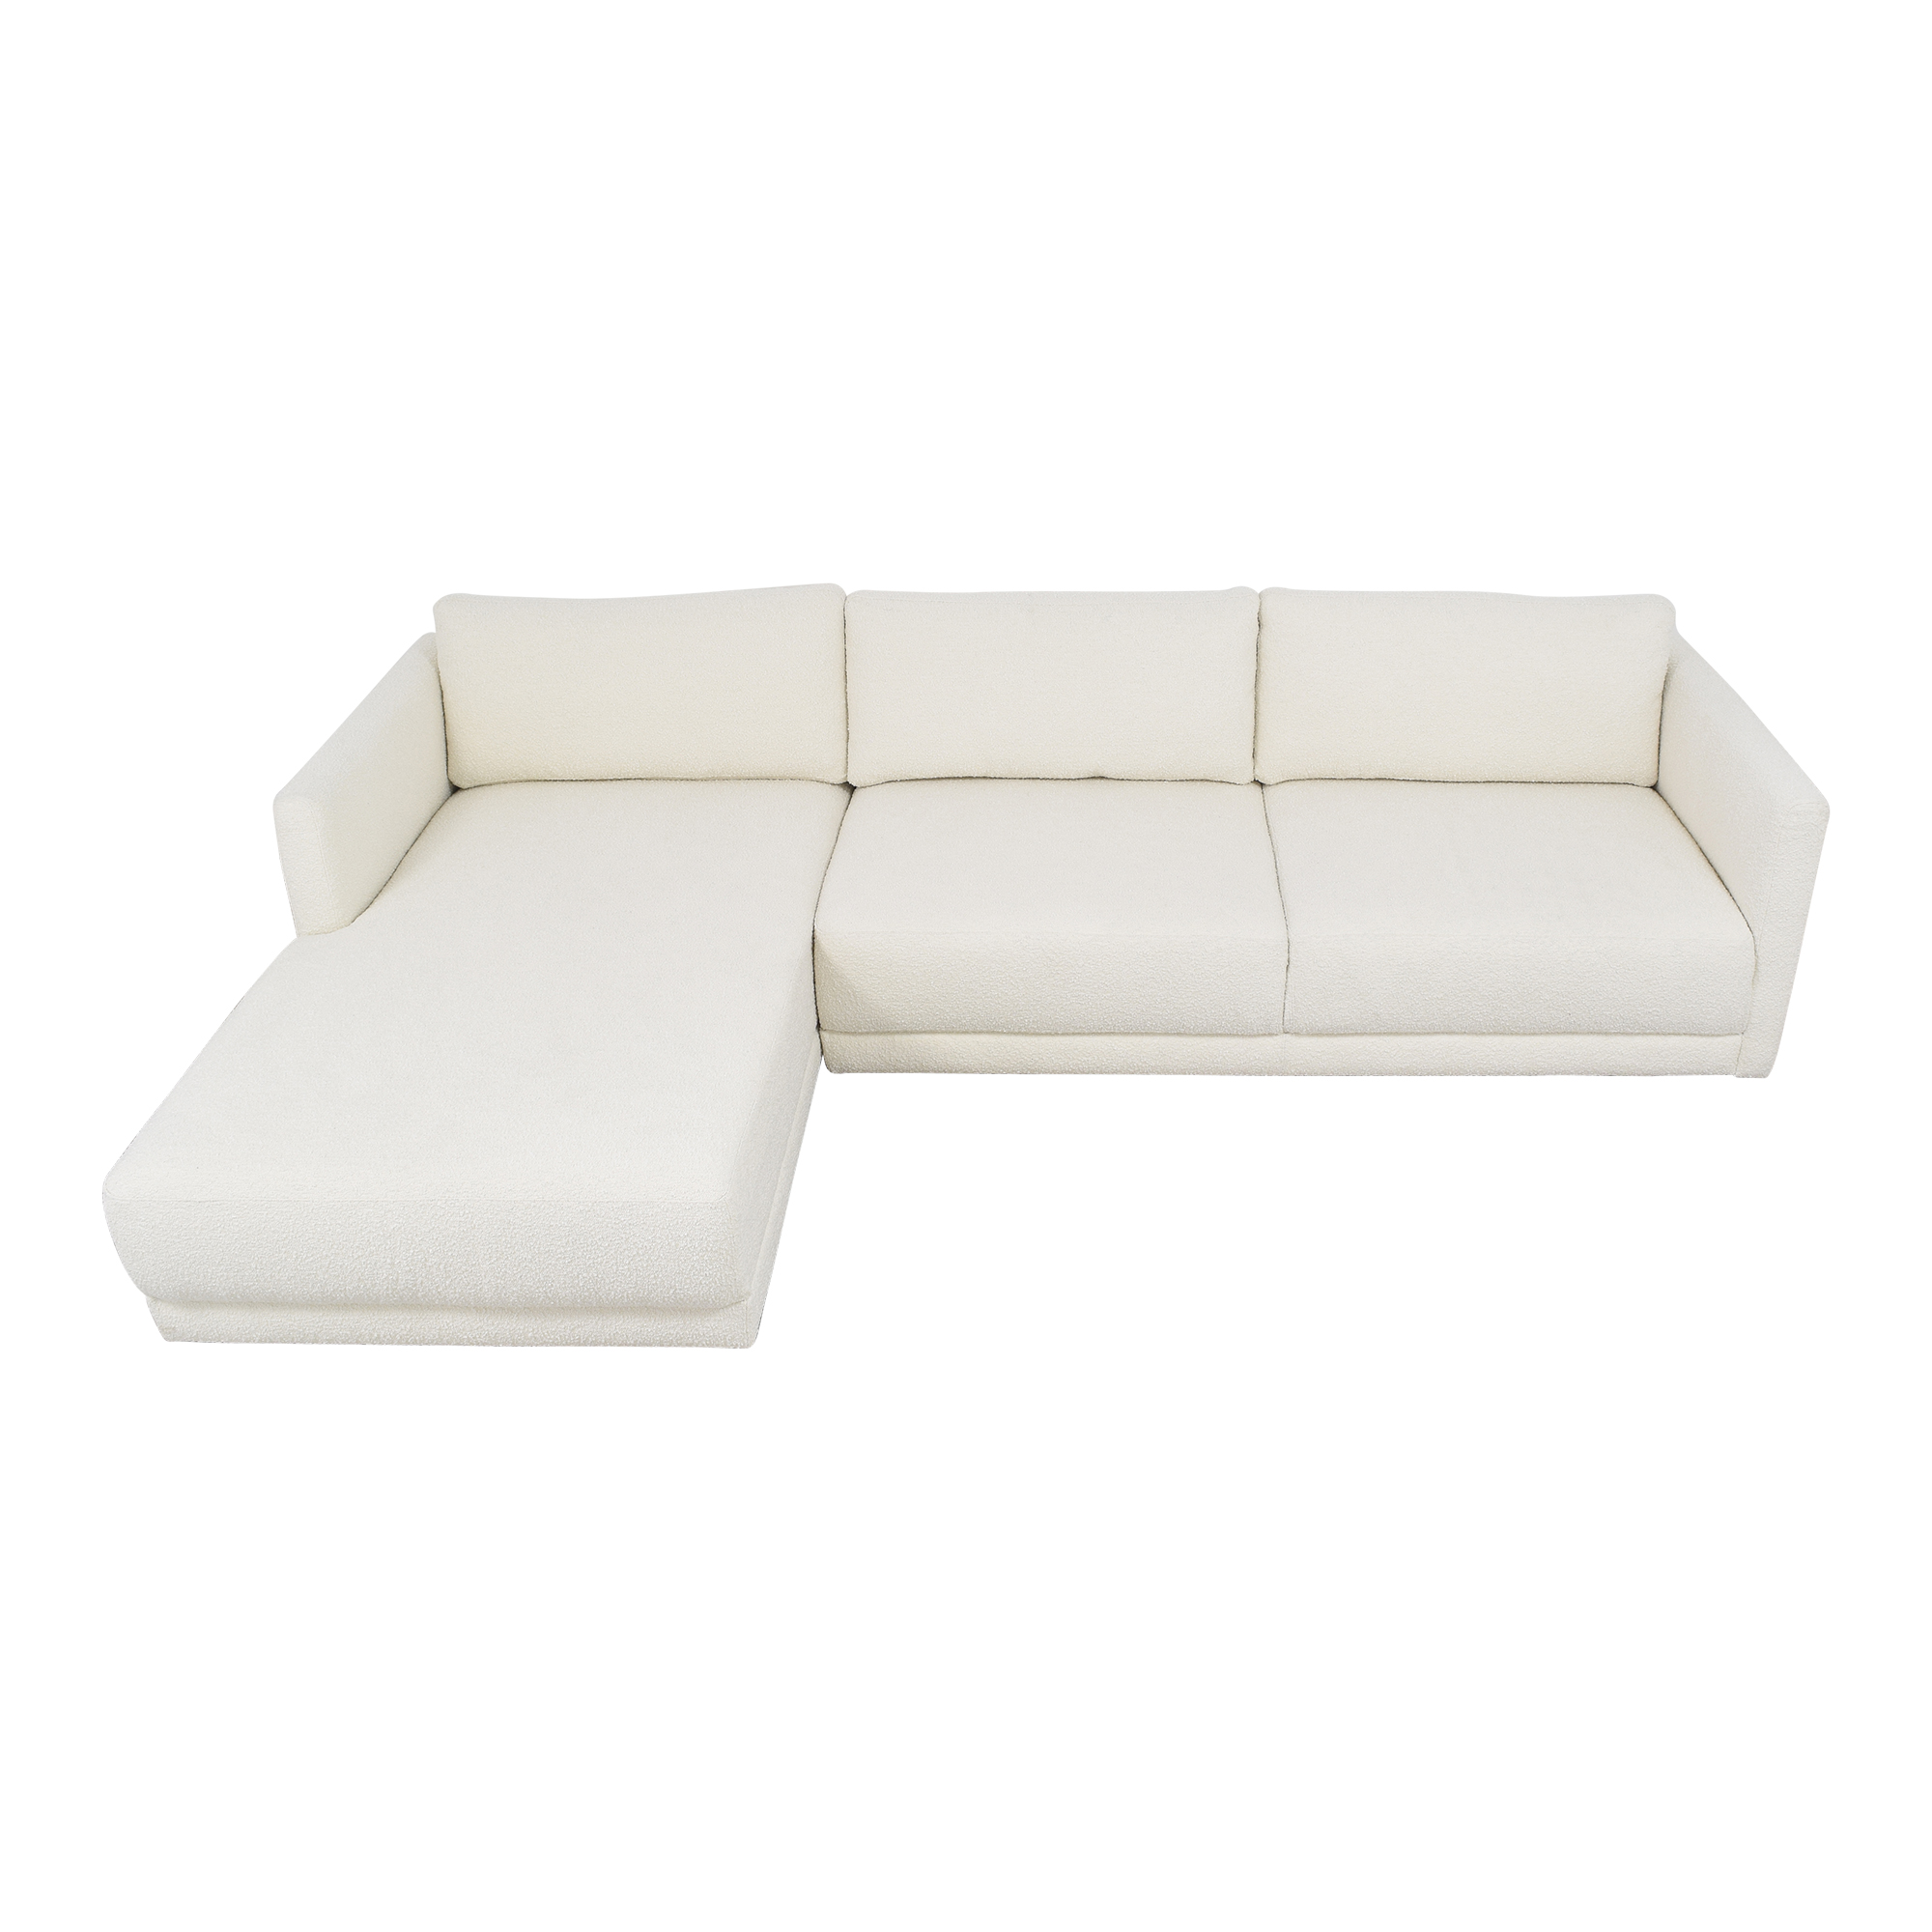 Kardiel Kardiel Domus Chaise Sectional Sofa used